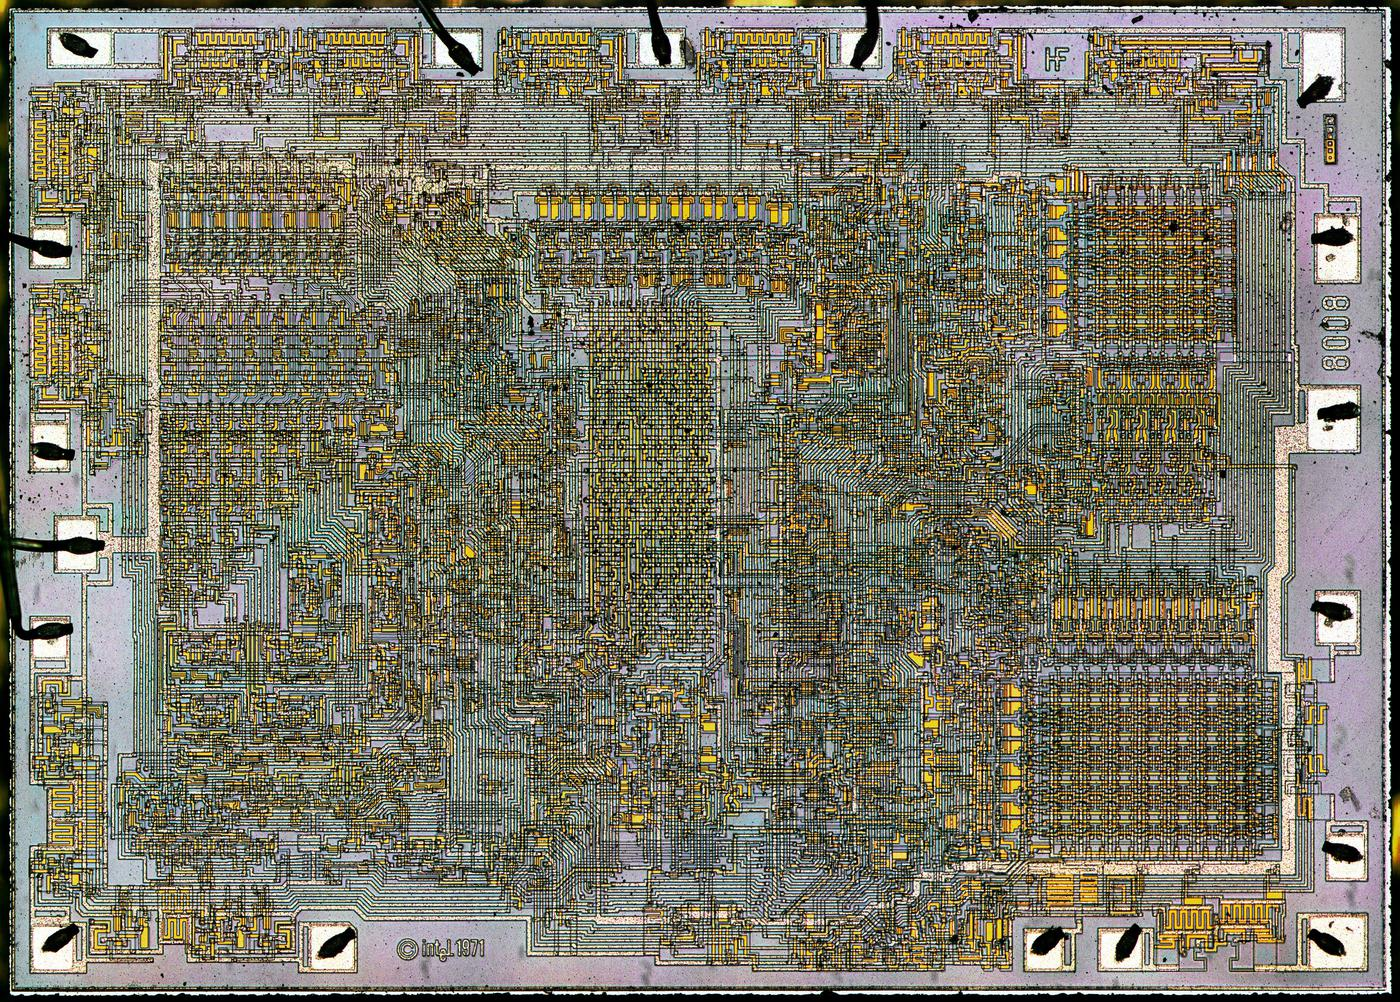 Die photo of the 8008 microprocessor. (Click for a larger image.) The initials HF appear on the top right for Hal Feeney, who did the chip's logic design and physical layout.